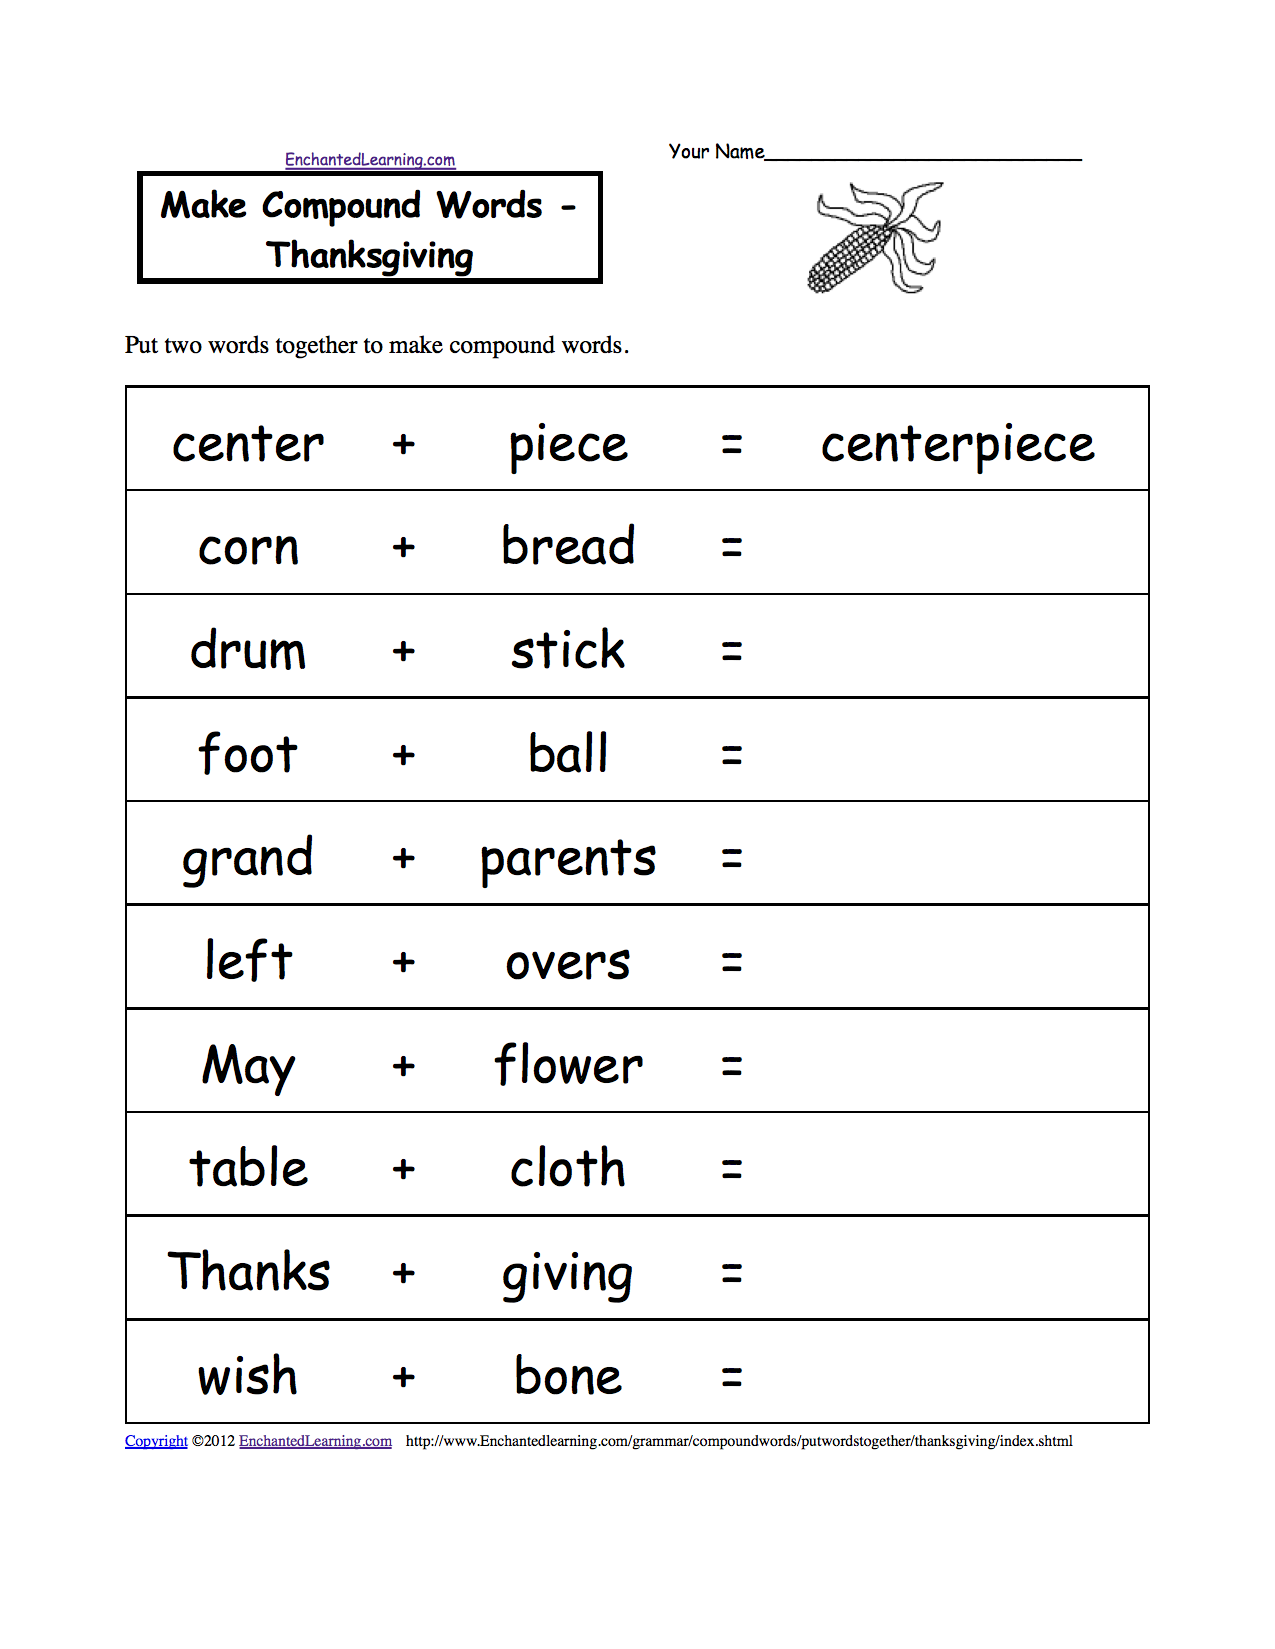 Thanksgiving Worksheet For 2nd Grade Free